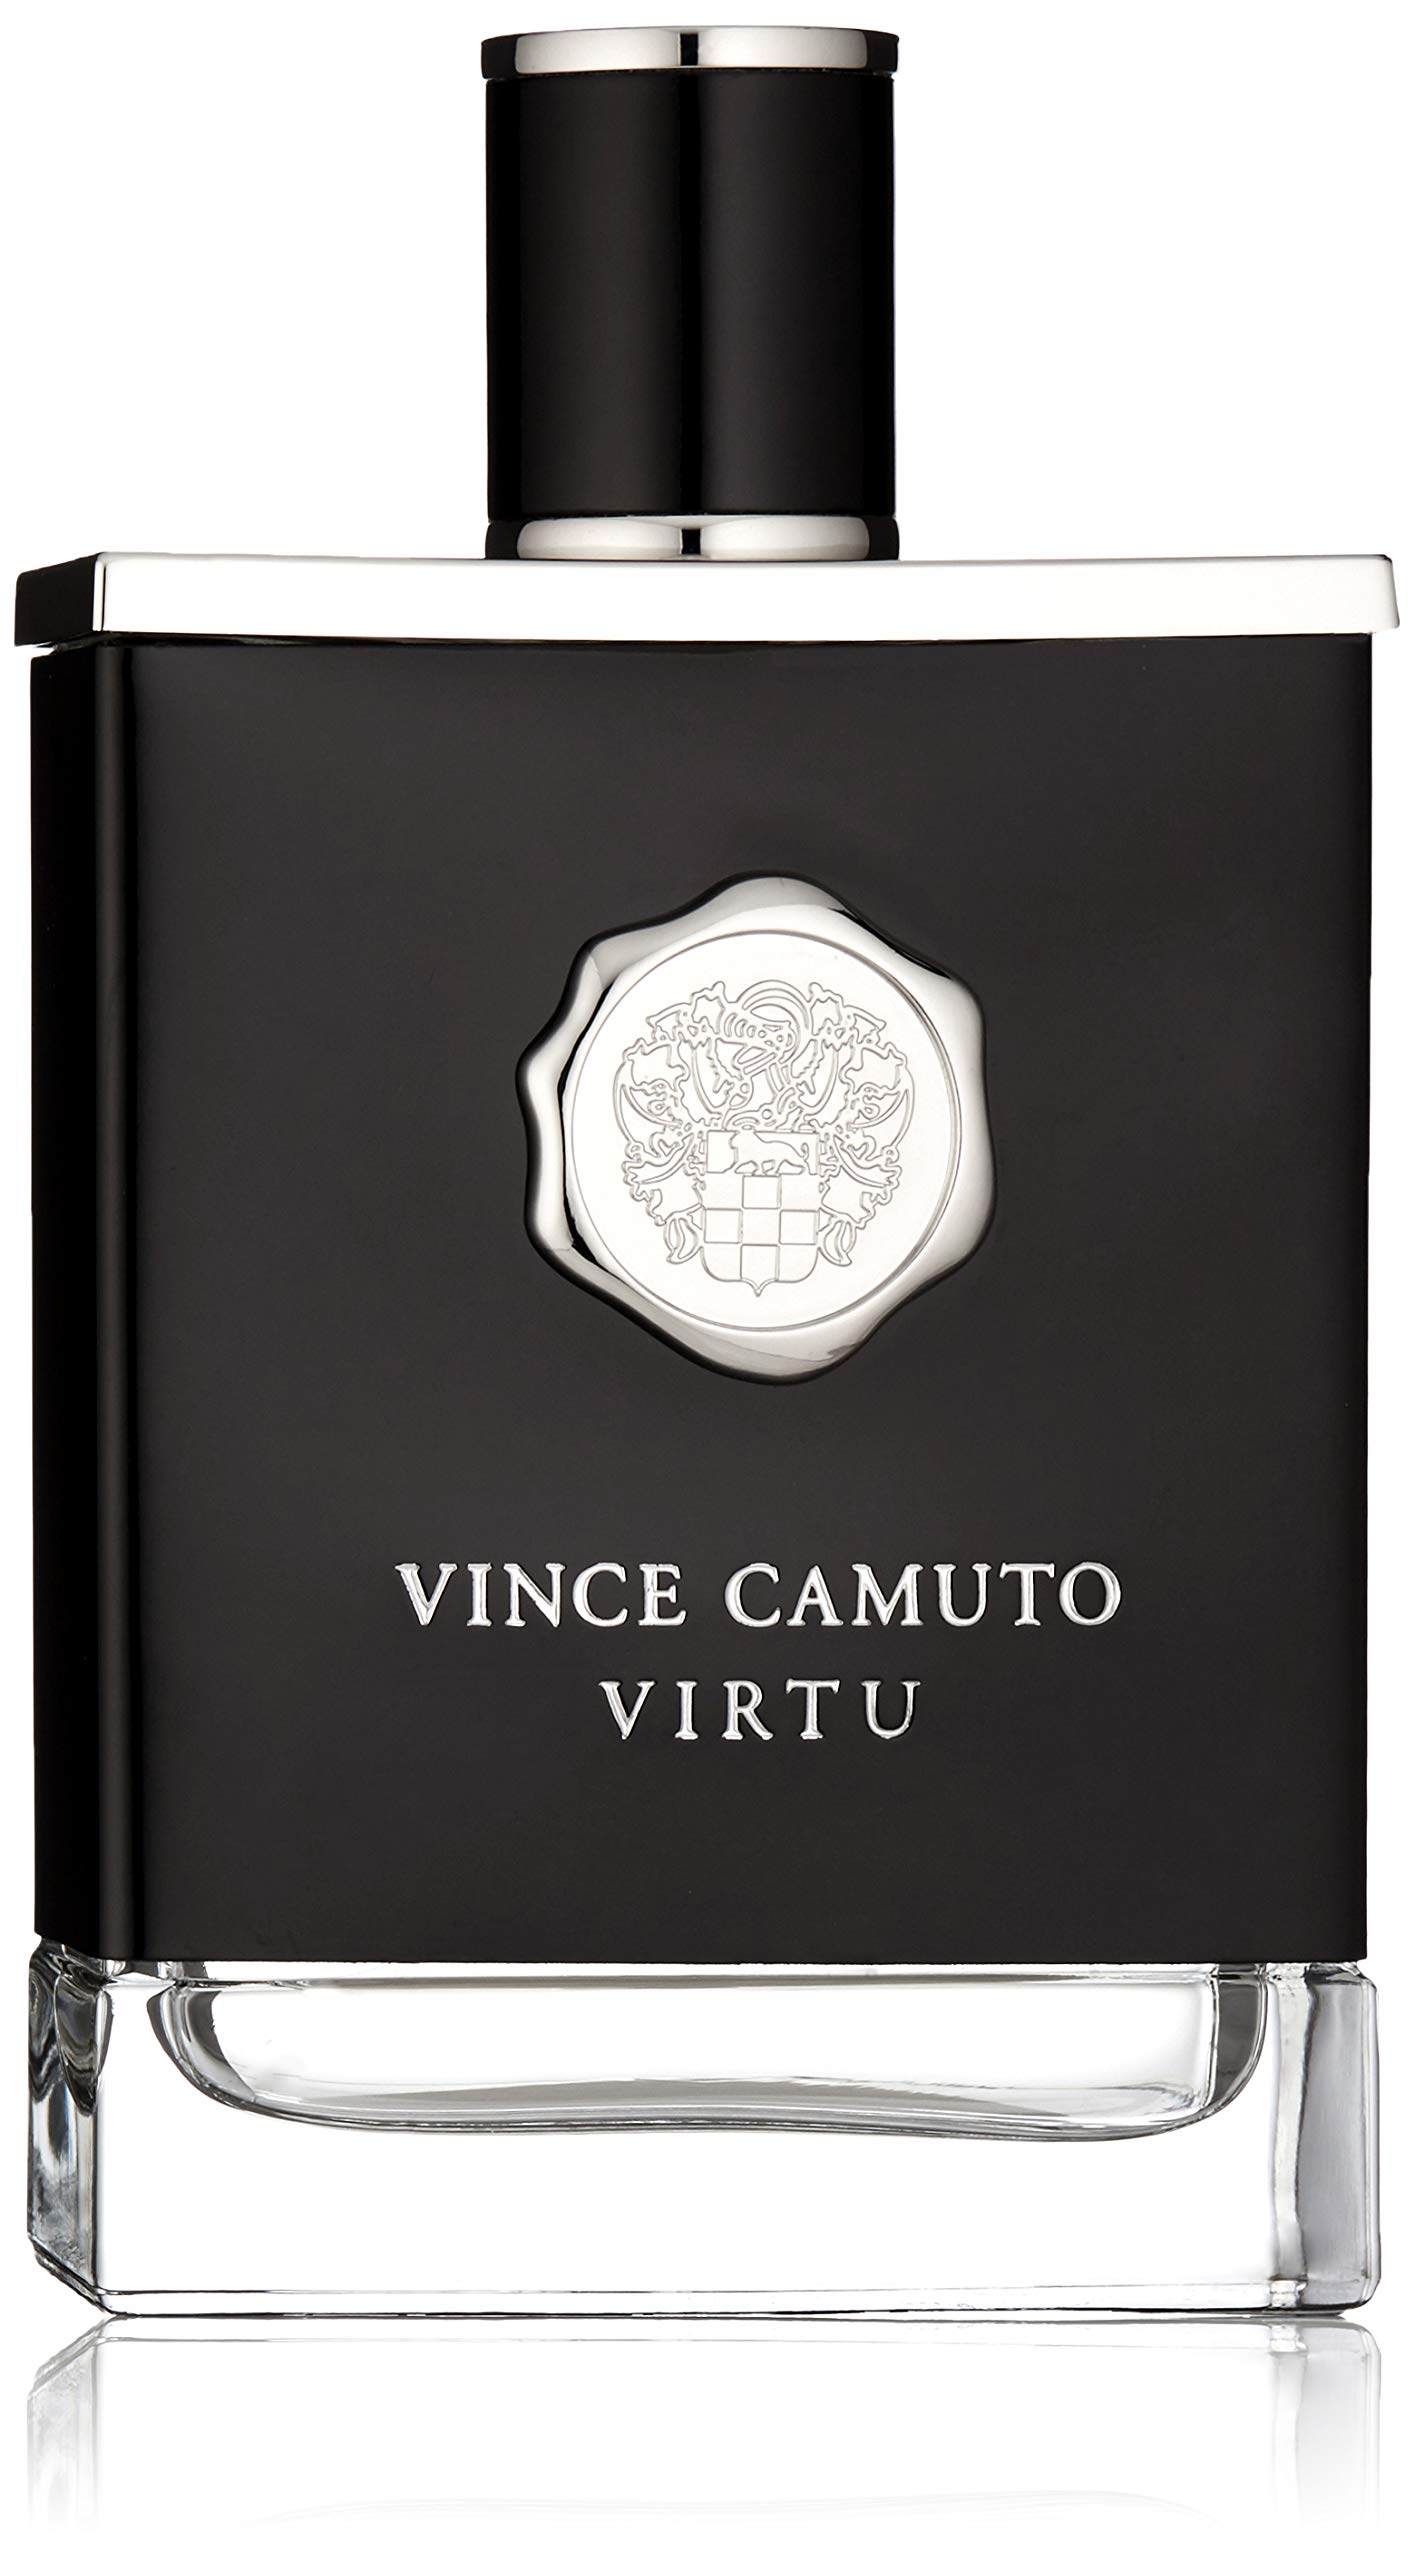 Vince Camuto Virtu Cologne for Men, 6.7 Oz.